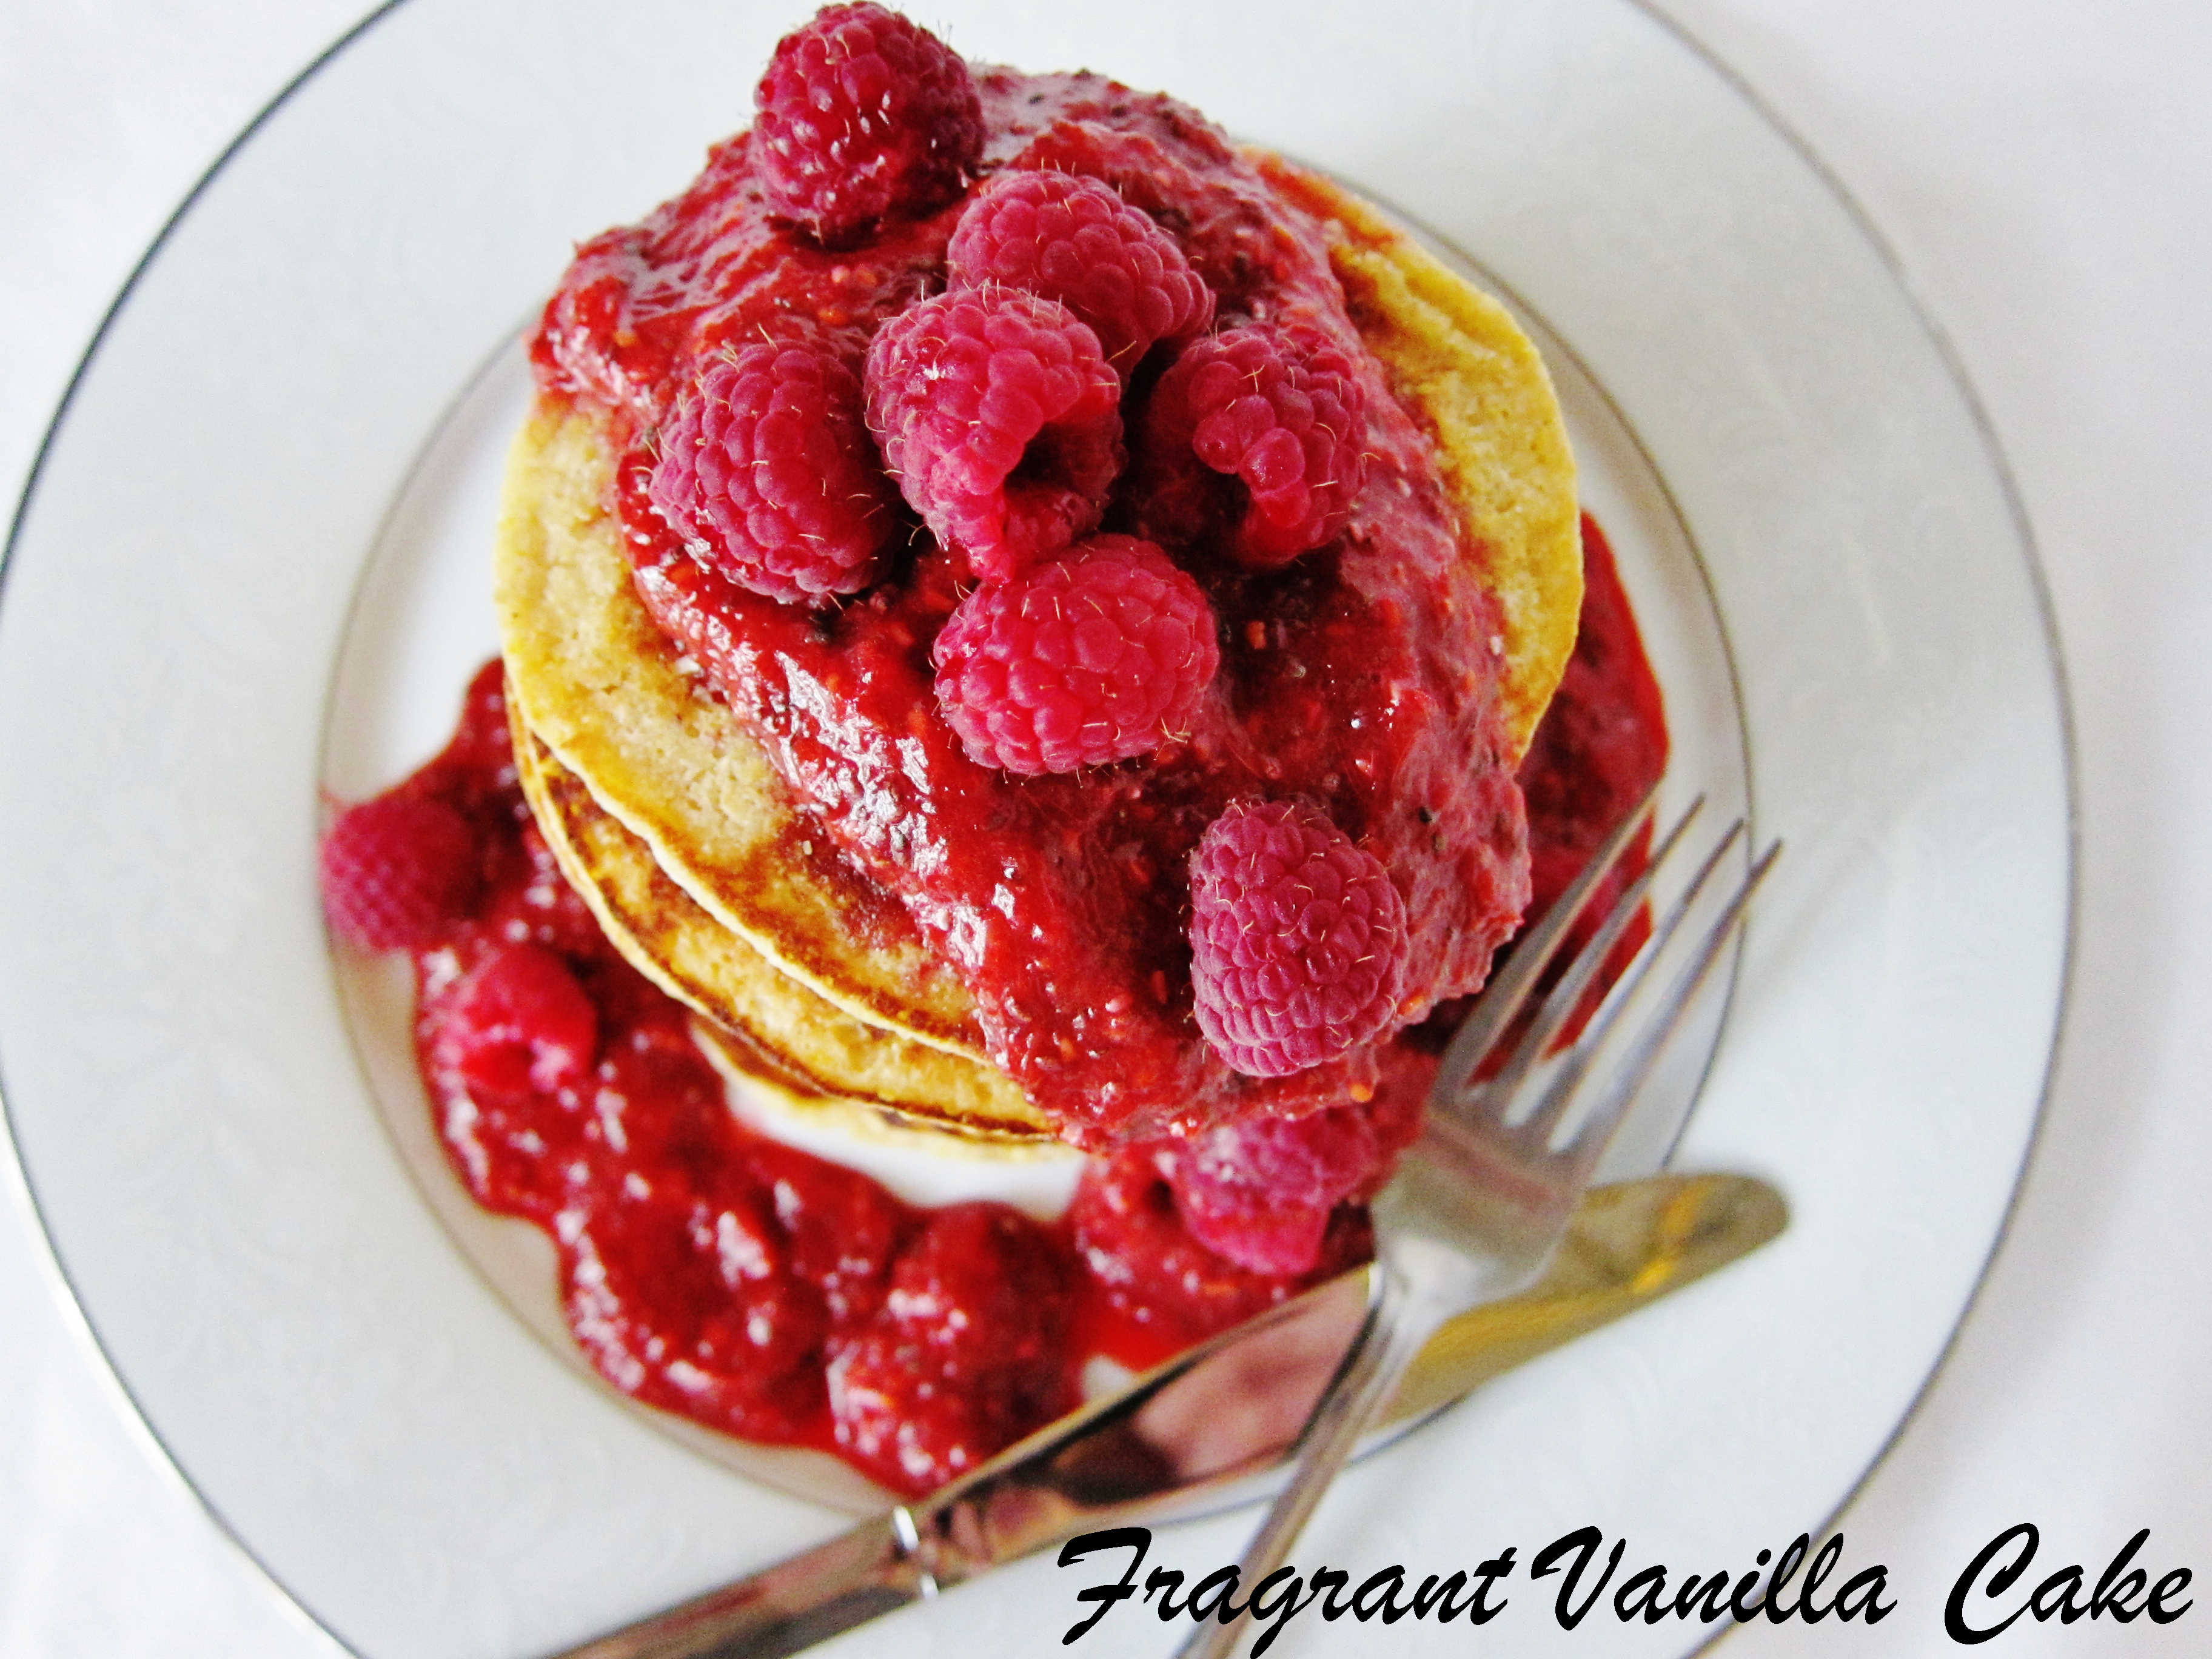 Vegan Lemon Corncakes (gluten free) with Raspberry Rhubarb Sauce